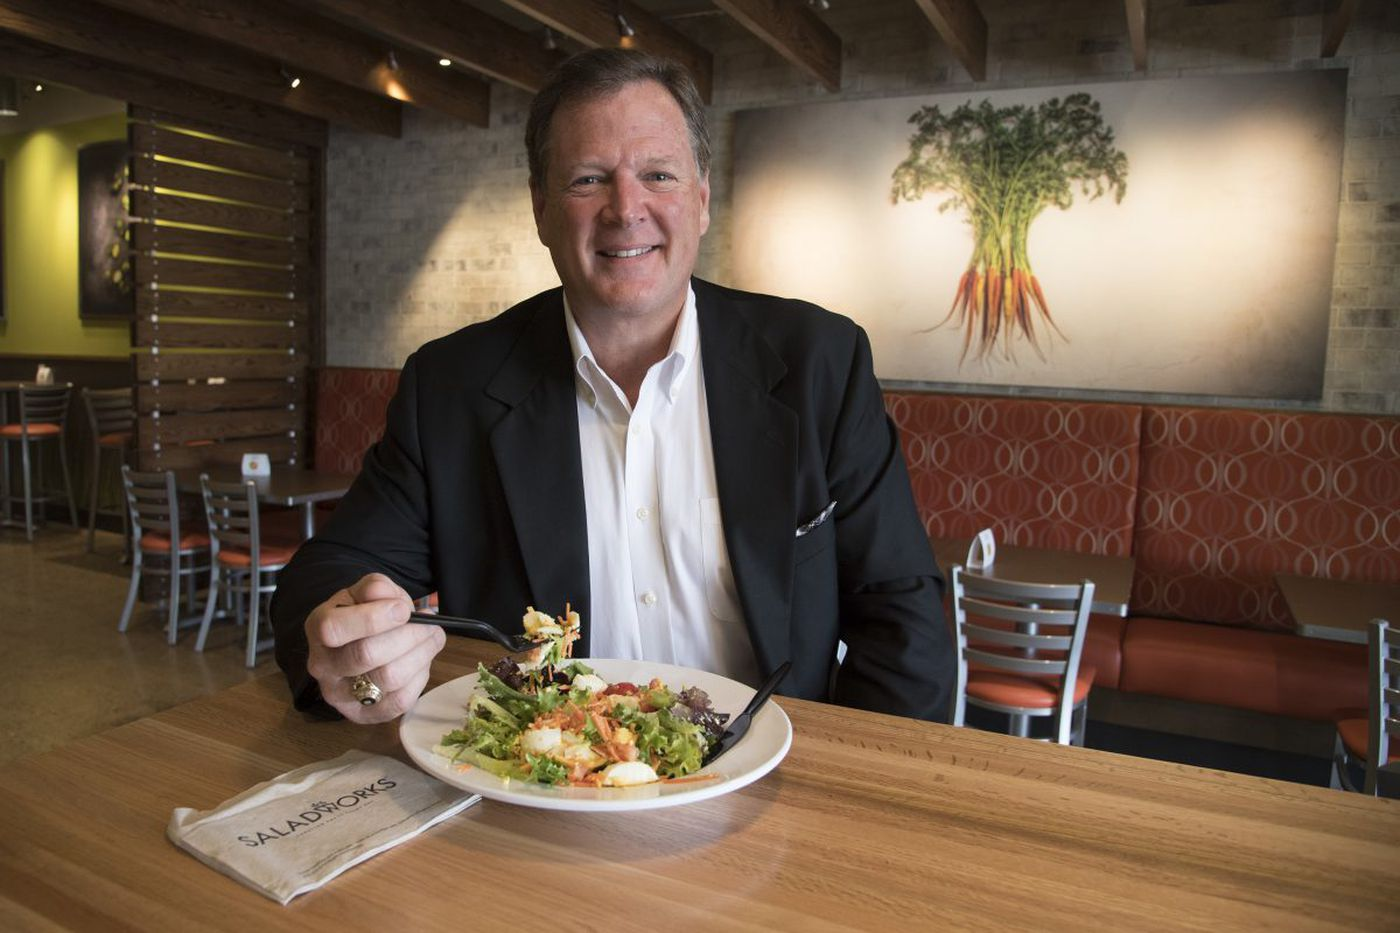 CEO puts Saladworks' sacred cows out to pasture